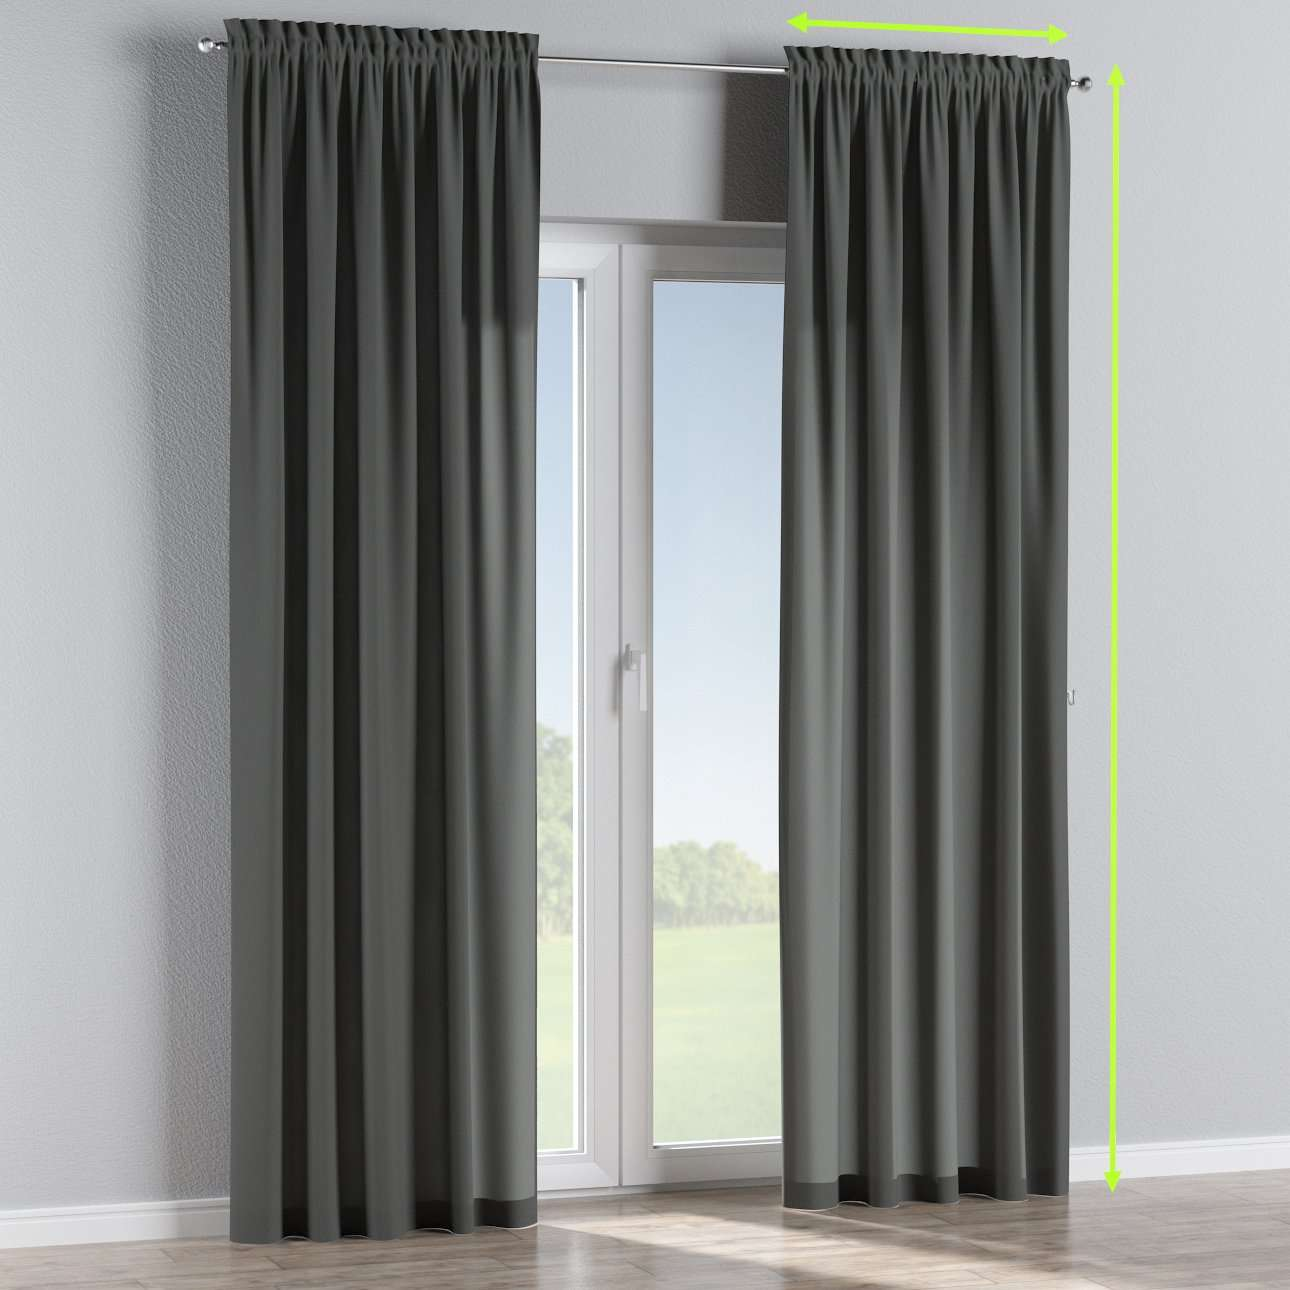 Slot and frill curtains in collection Quadro, fabric: 136-14